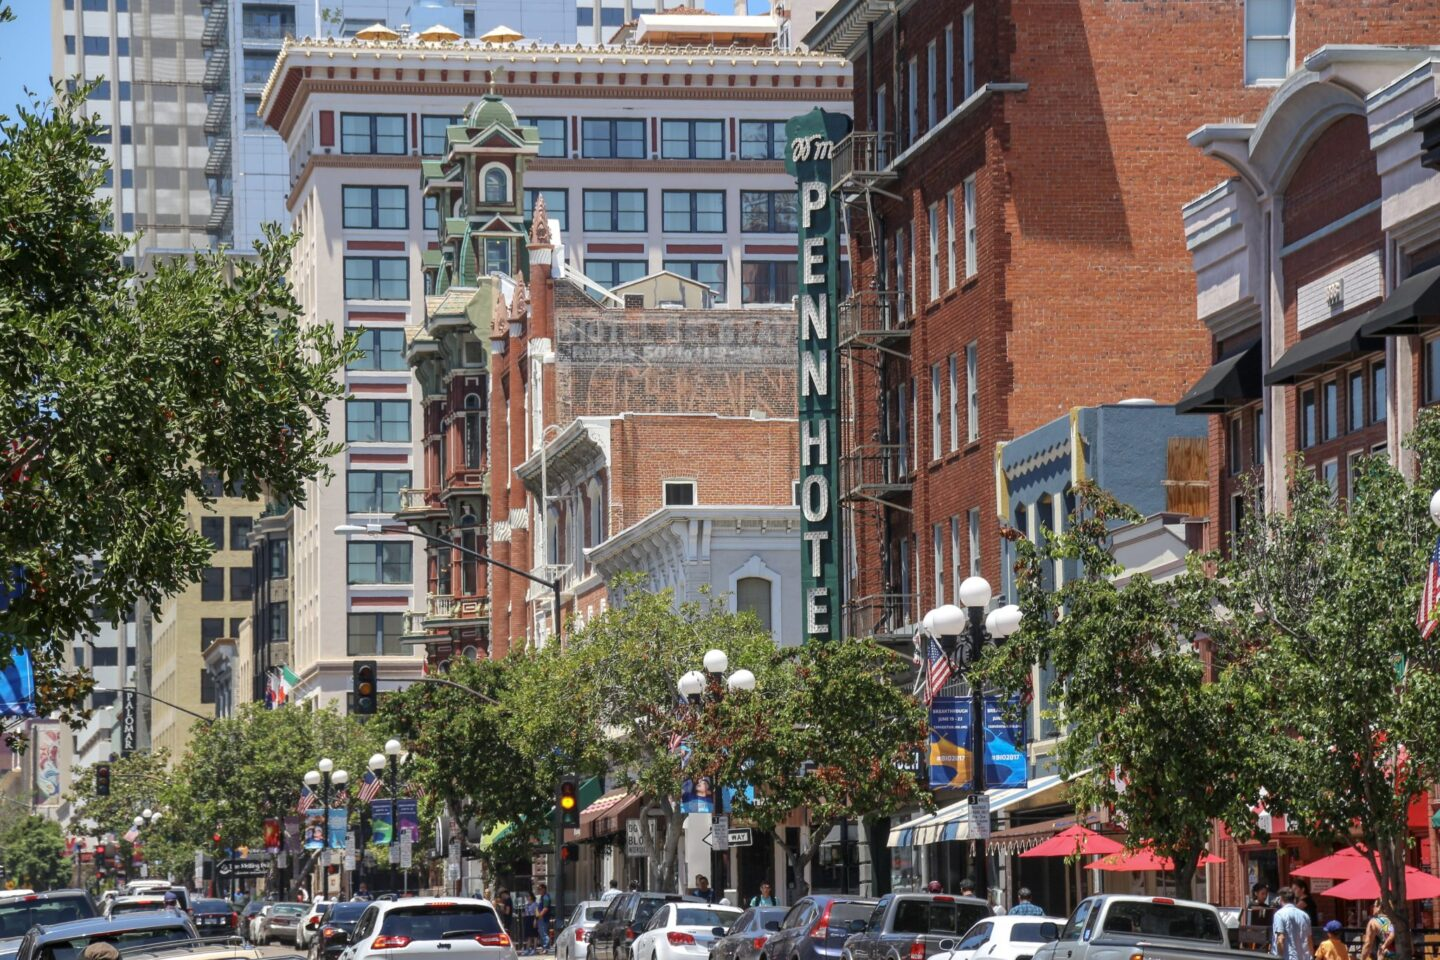 Street in Gaslamp Quarter, San Diego